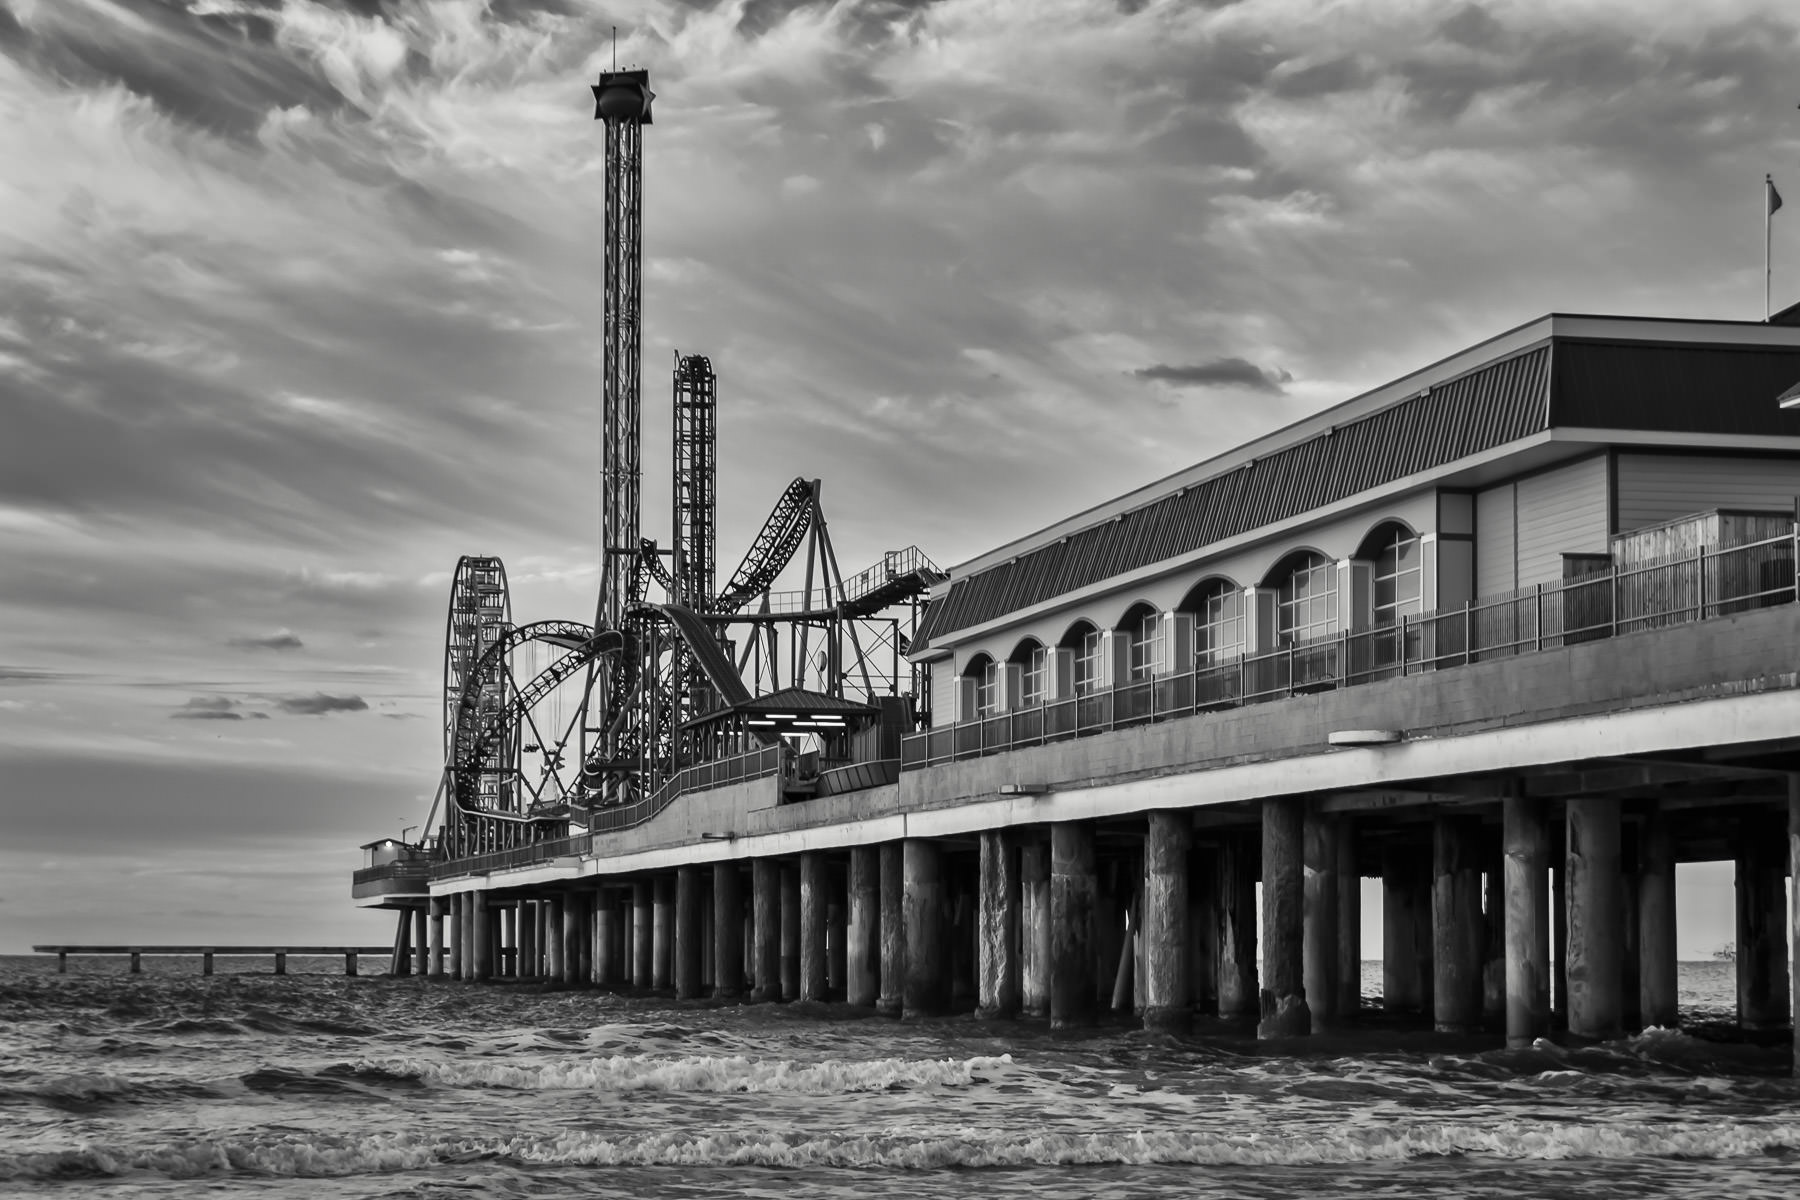 Galveston, Texas' Pleasure Pier rises from the surf of the Gulf of Mexico.